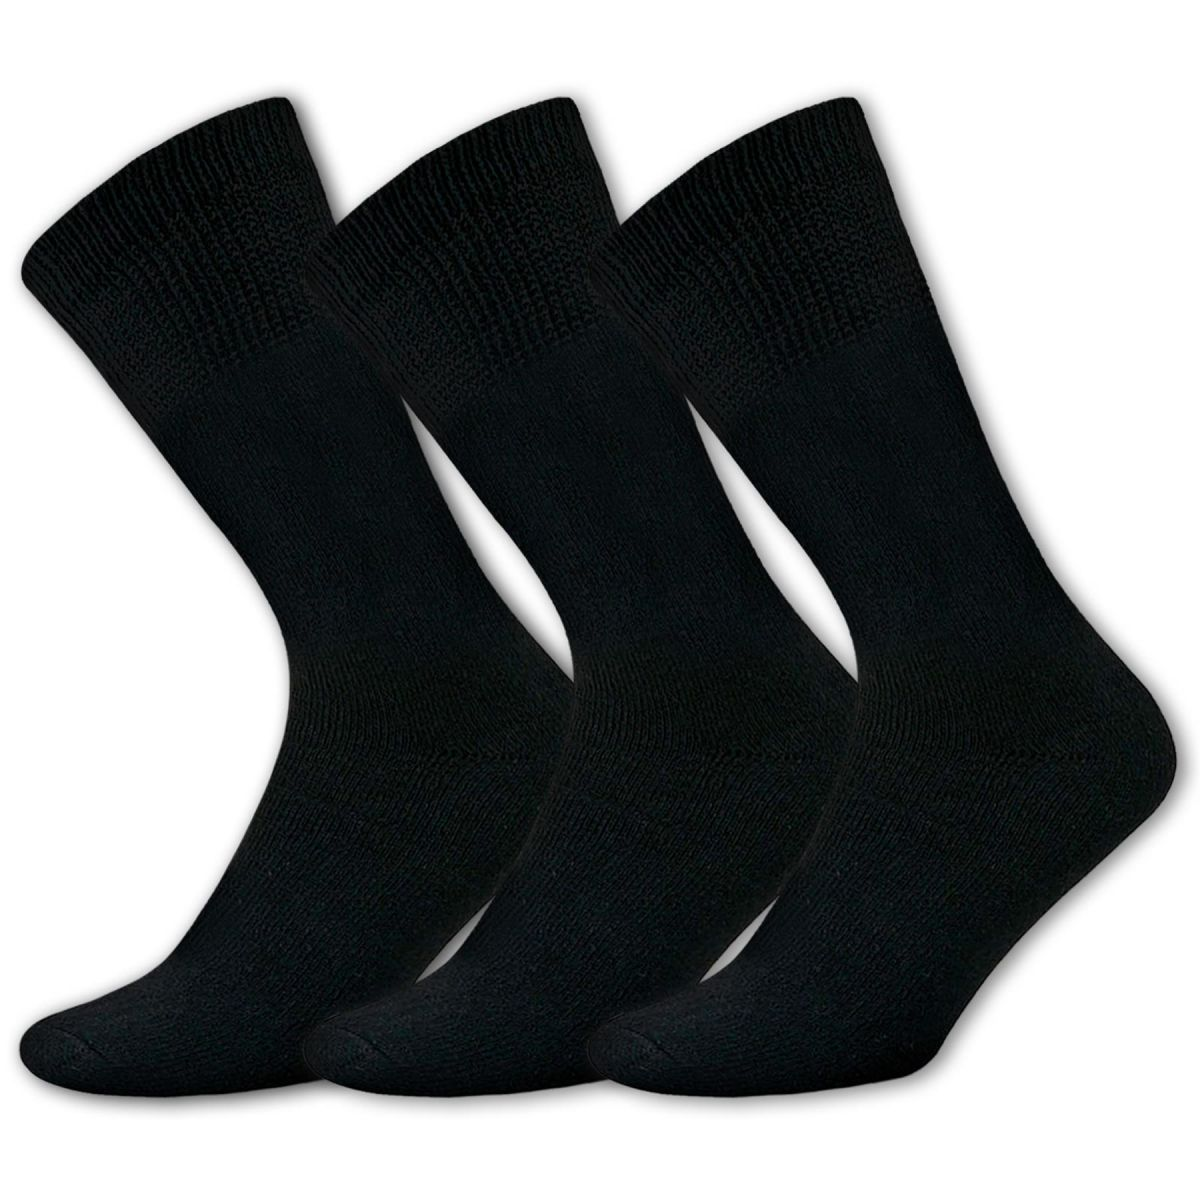 Accessories | Mens Diabetic Bamboo Extra Wide Super Soft Loose Top Socks